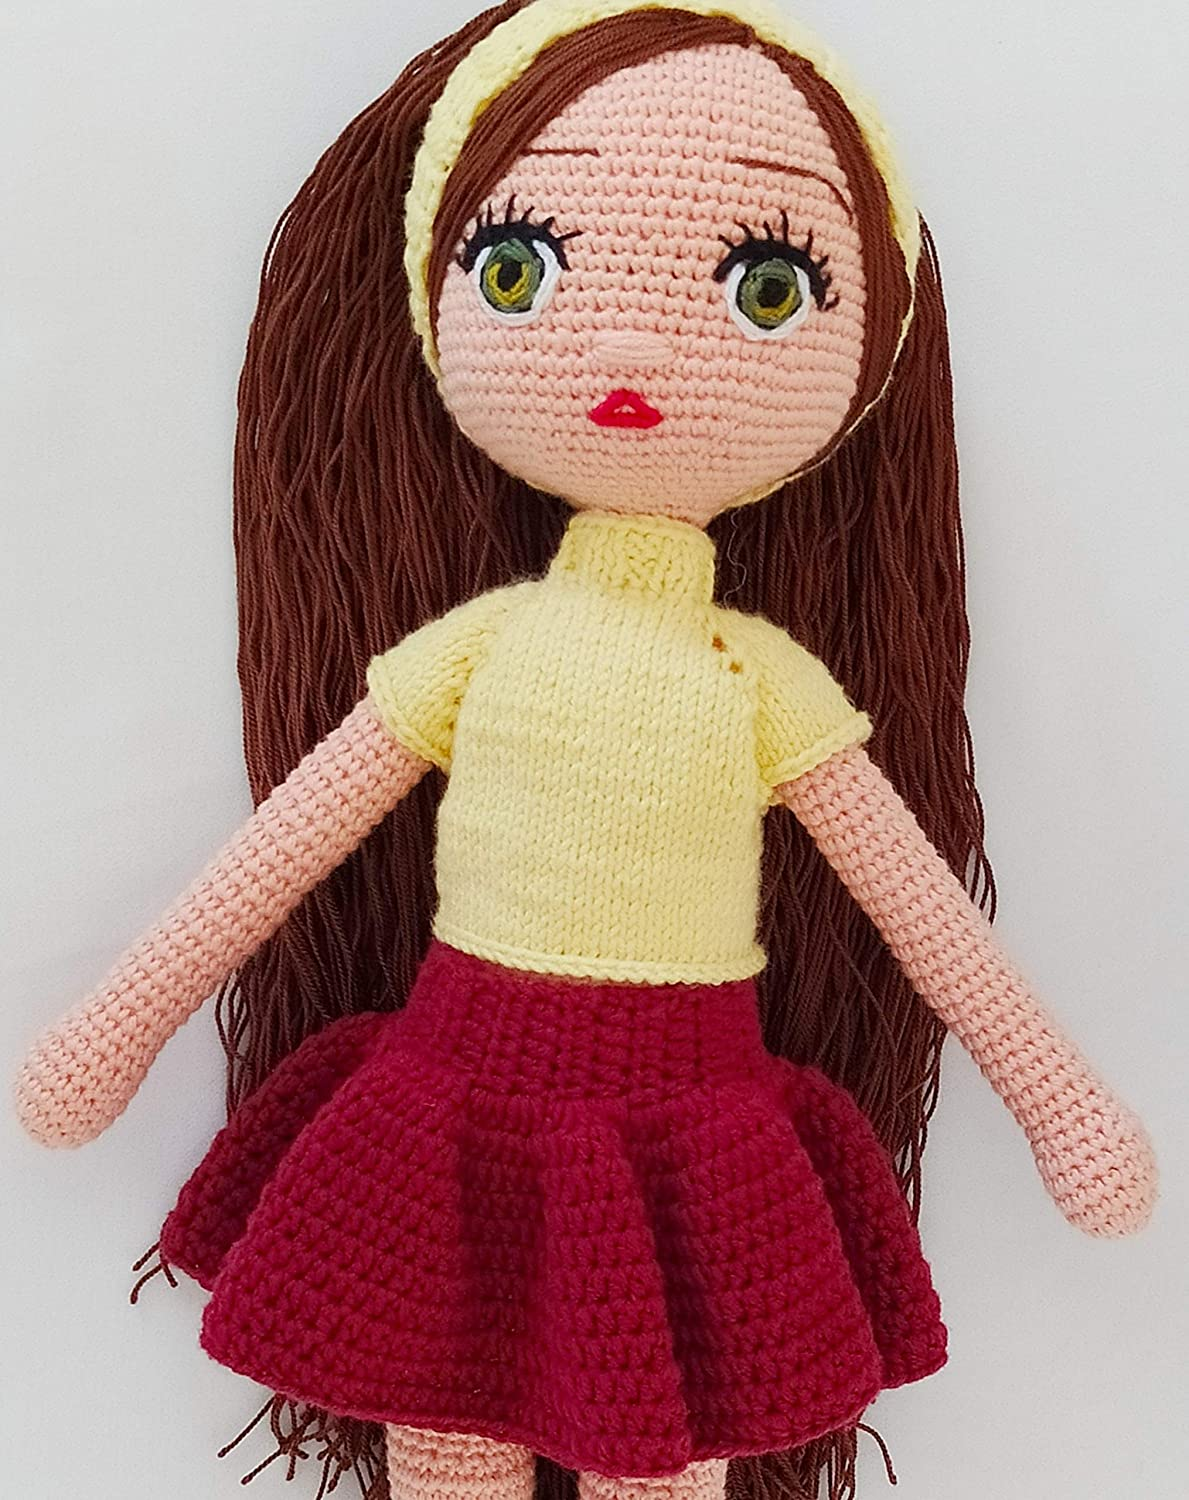 Greathappy Amigurumi Baby - Crochet and Knitted Baby Toys – Handmade - Stuffed Toys - A Beautiful Gift